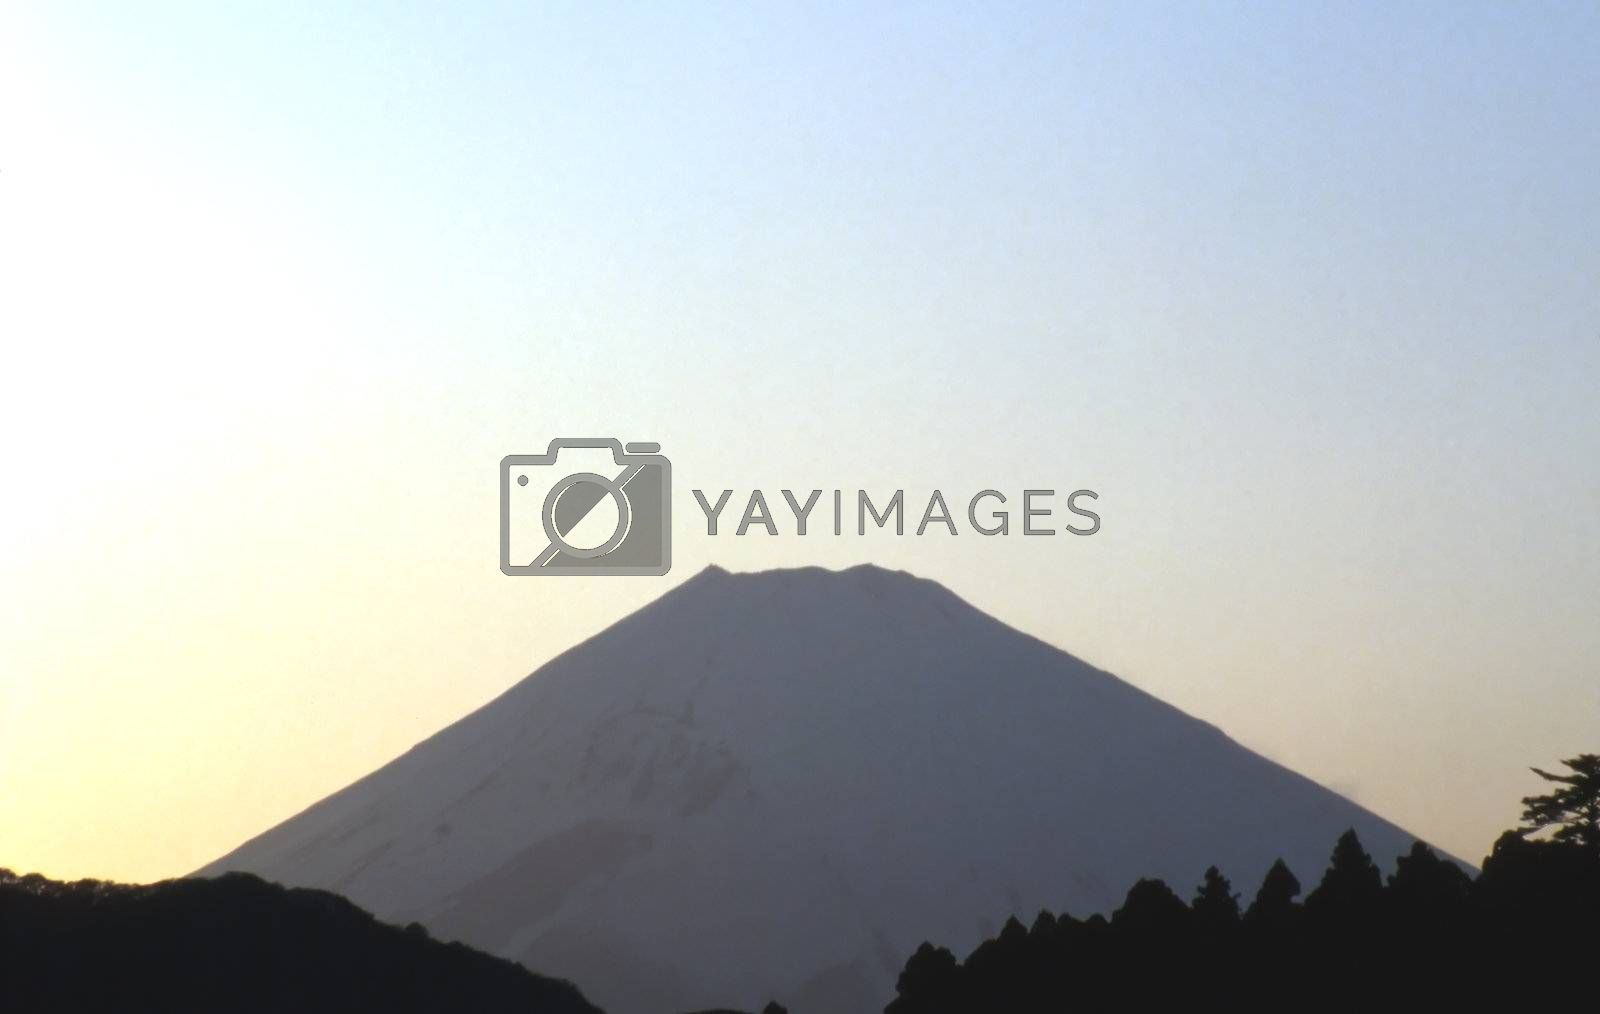 Mount Fuji, Japan in evening silhouette.